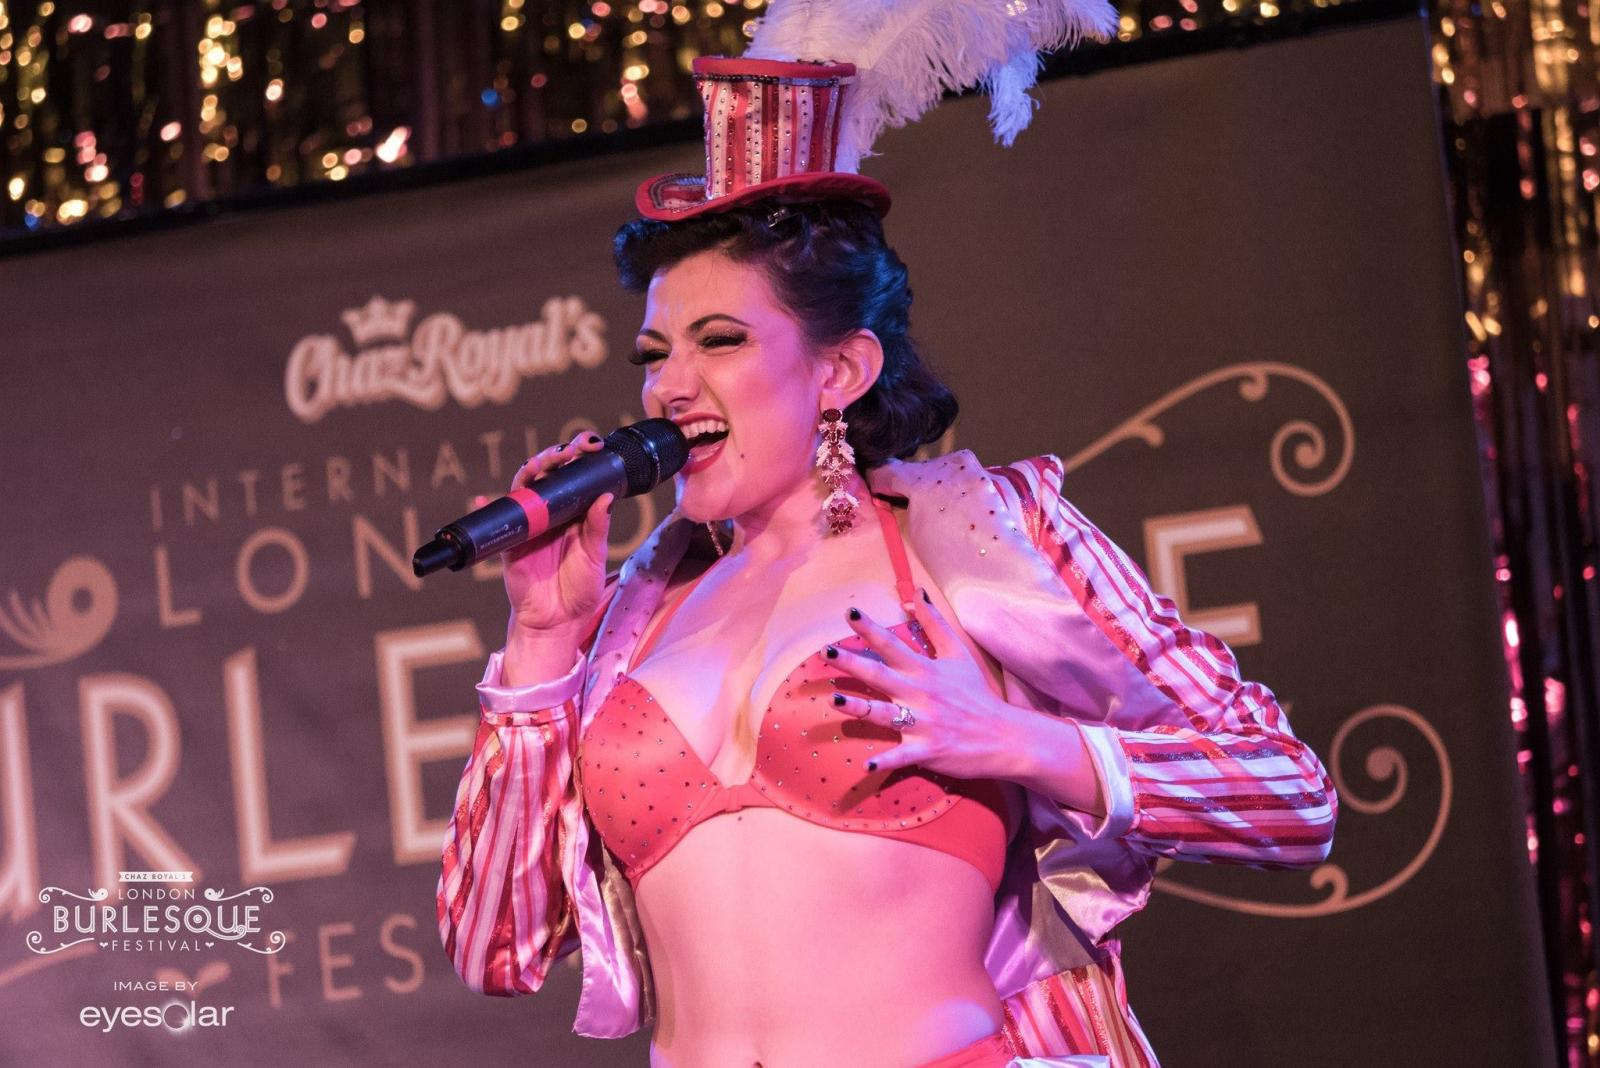 Chaz Royal presents London Burlesque Festival 2018 - Burlesque, Gin and Jazz night